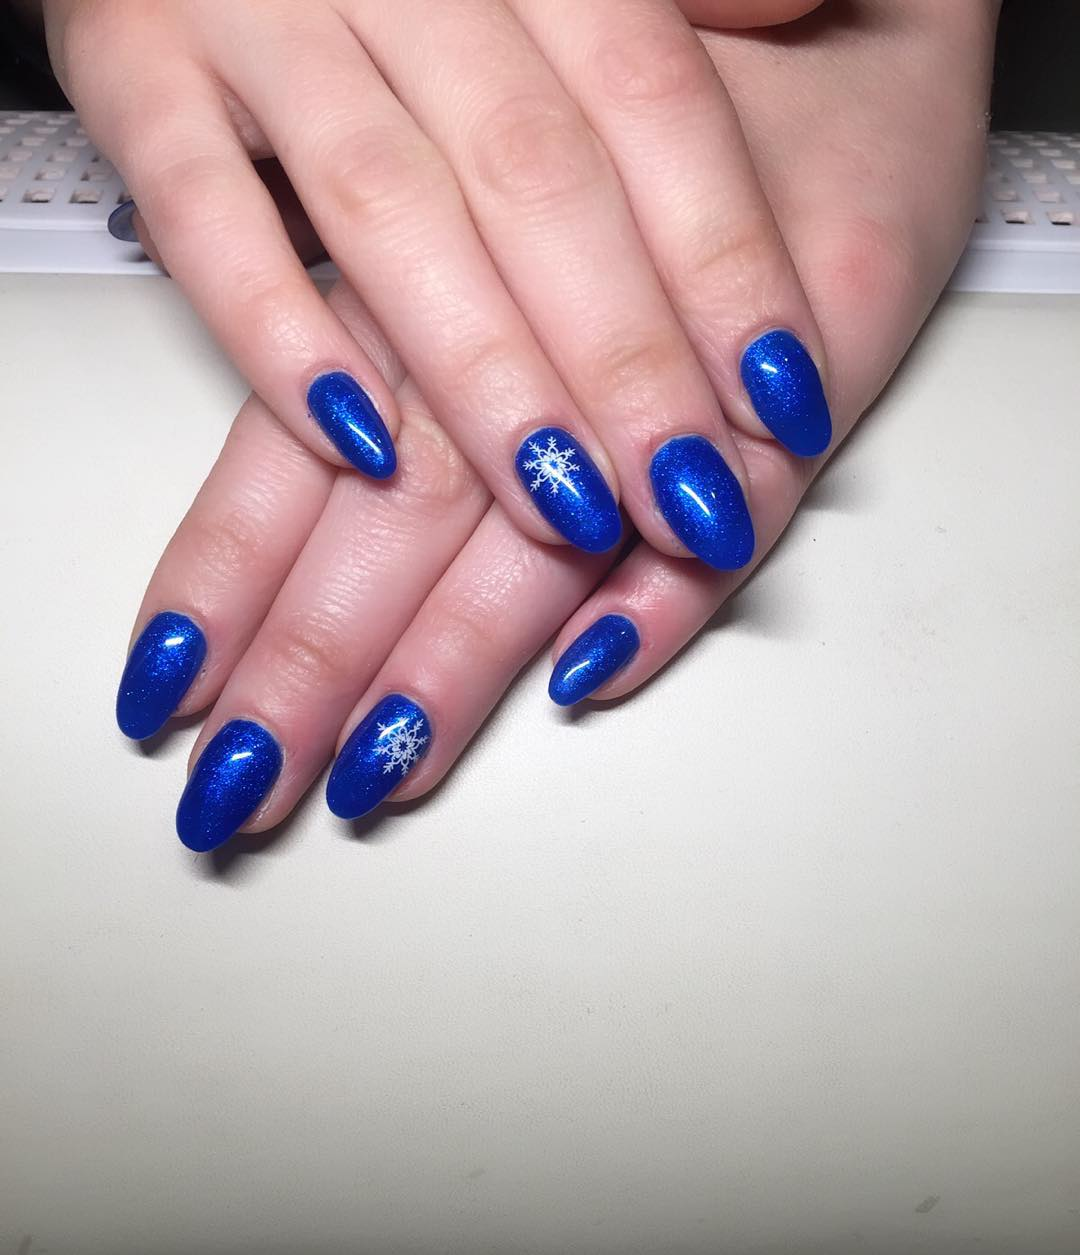 Ideas Of Nail Art: 21+ Royal Blue Nail Art Designs, Ideas